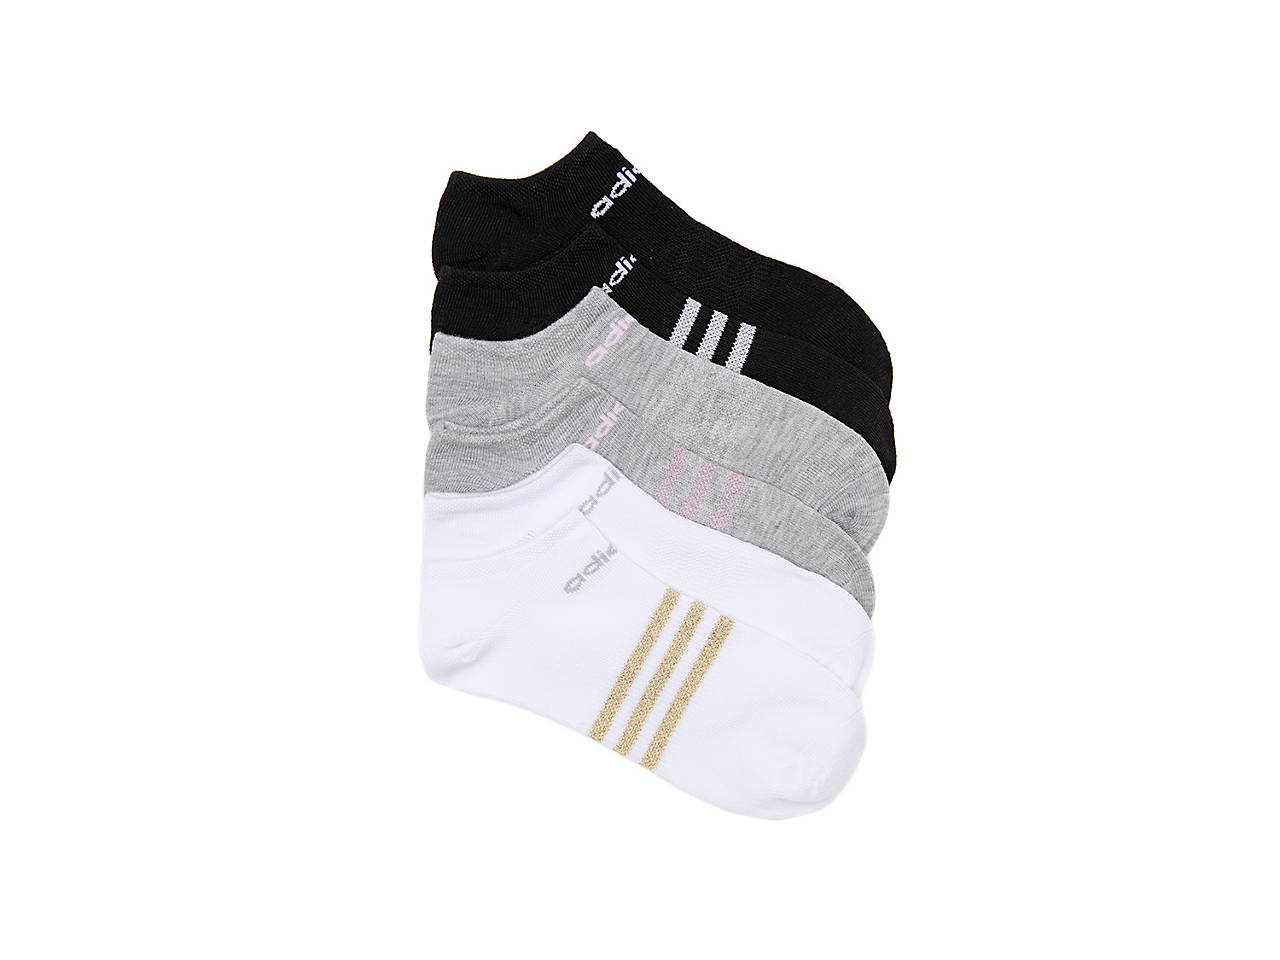 c665ee87a5a9 adidas Superlite Metallic Toddler   Youth No Show Socks - 6 Pack ...